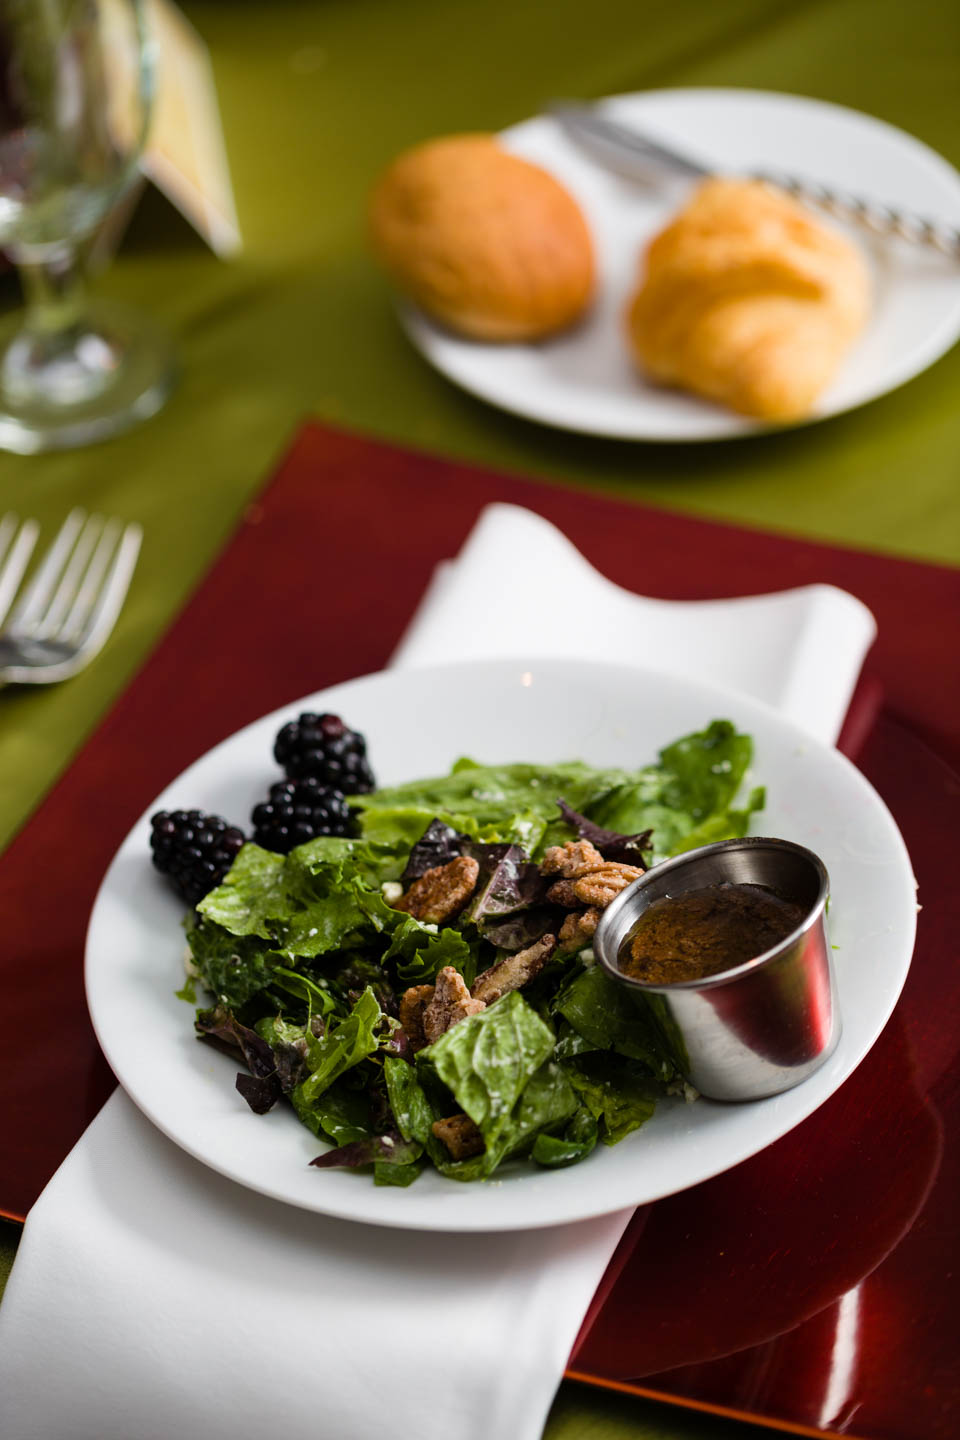 Blackberry and walnut salad